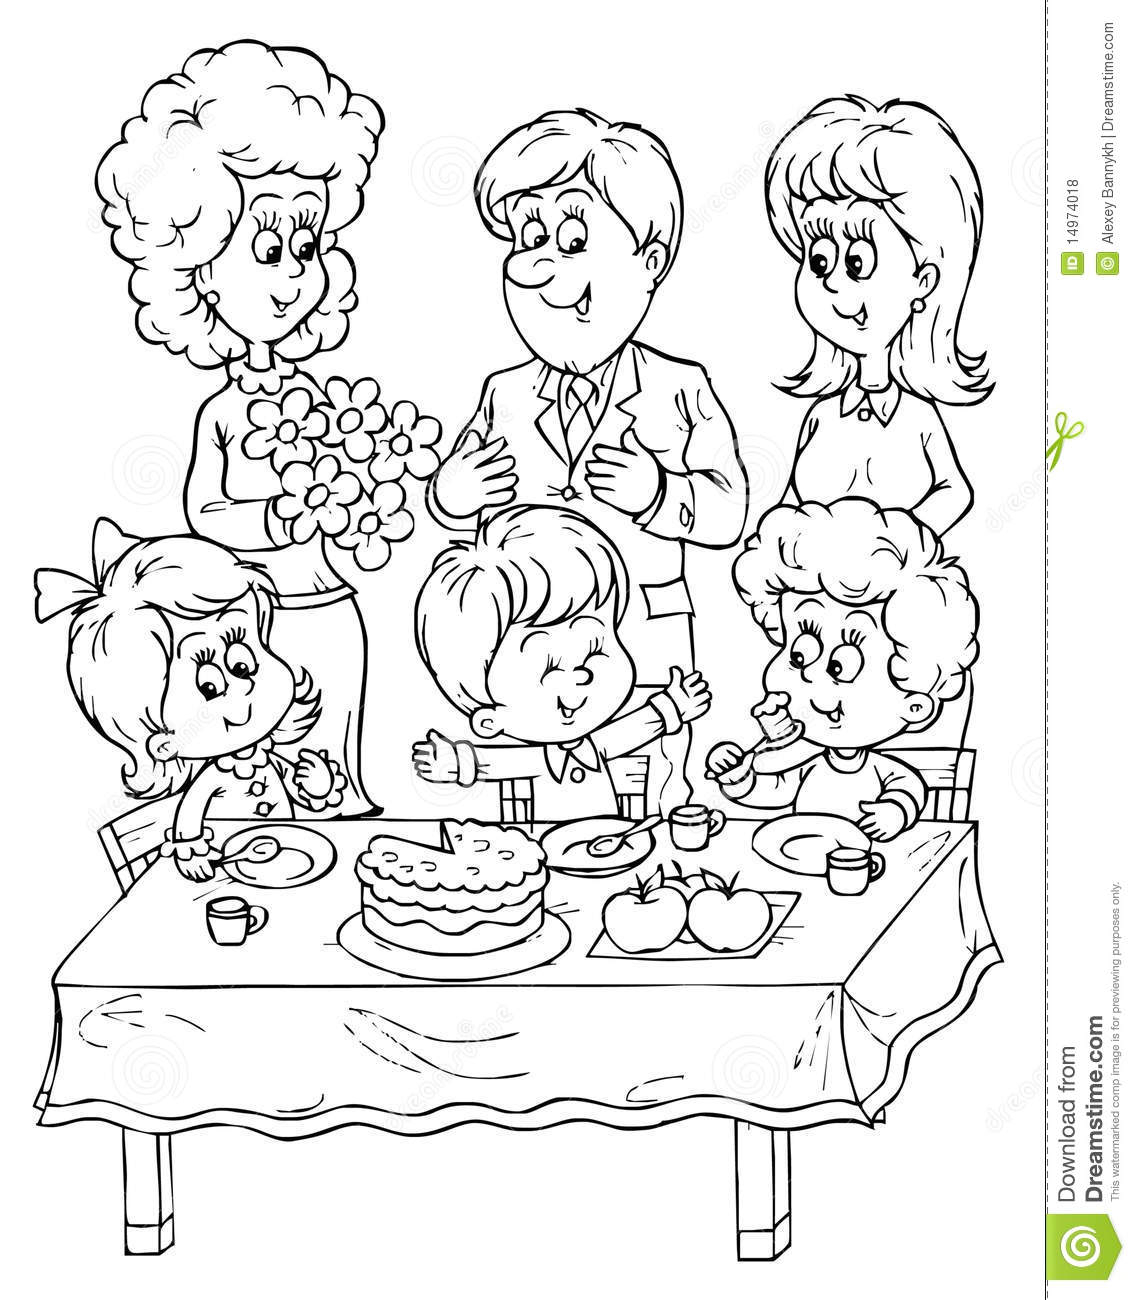 birthday party drawing ; drawing-pictures-of-birthday-party-birthday-party-stock-illustration-image-of-mood-festive-14974018